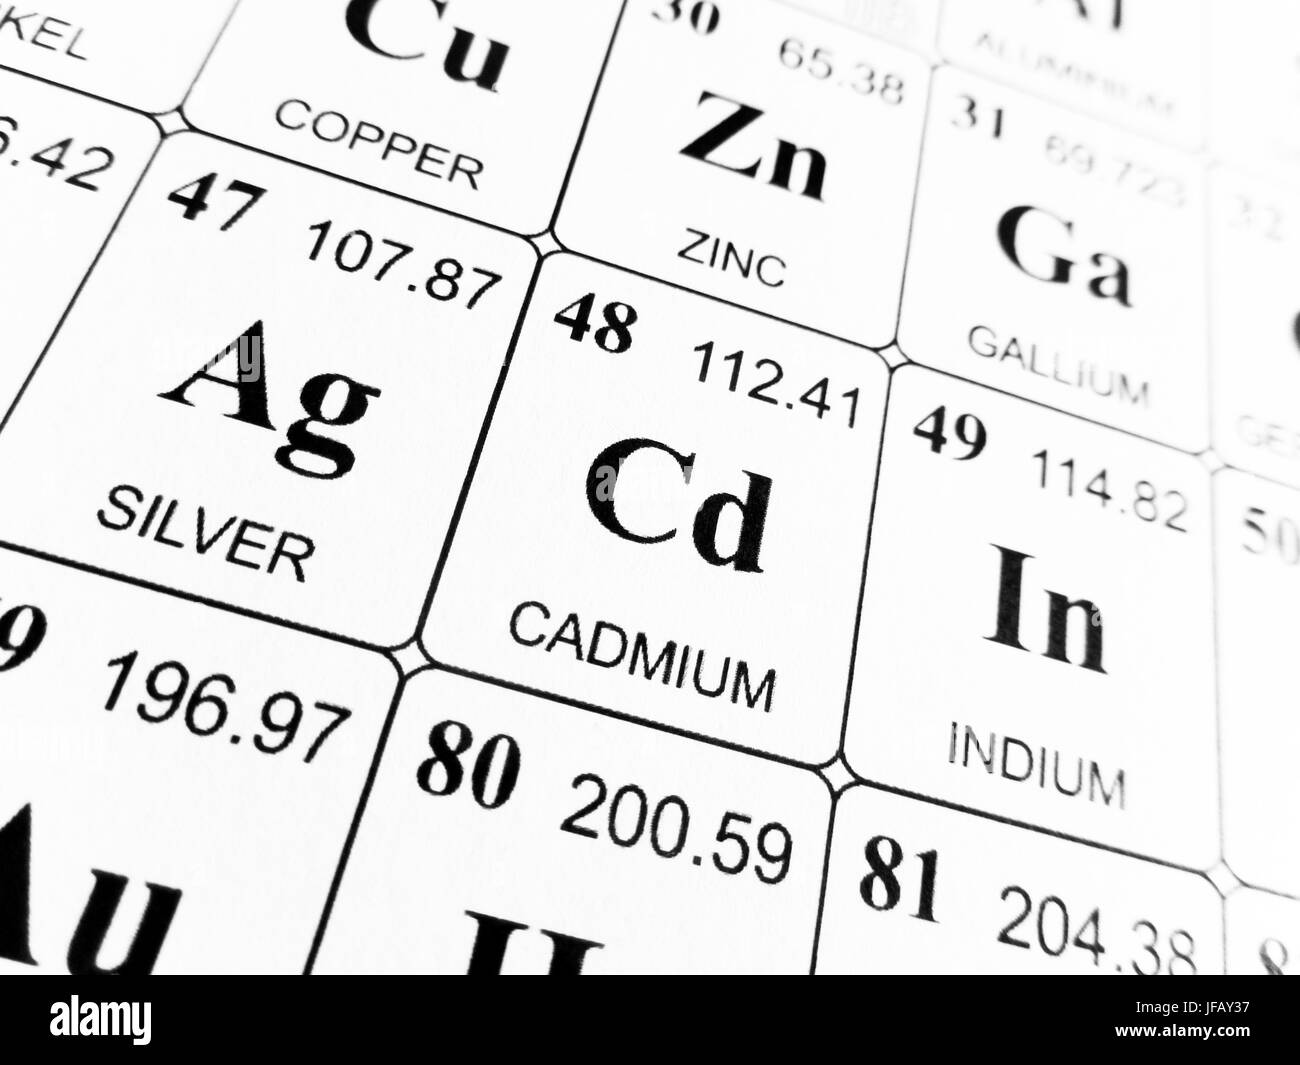 Cadmium on the periodic table of the elements stock photo royalty cadmium on the periodic table of the elements gamestrikefo Choice Image